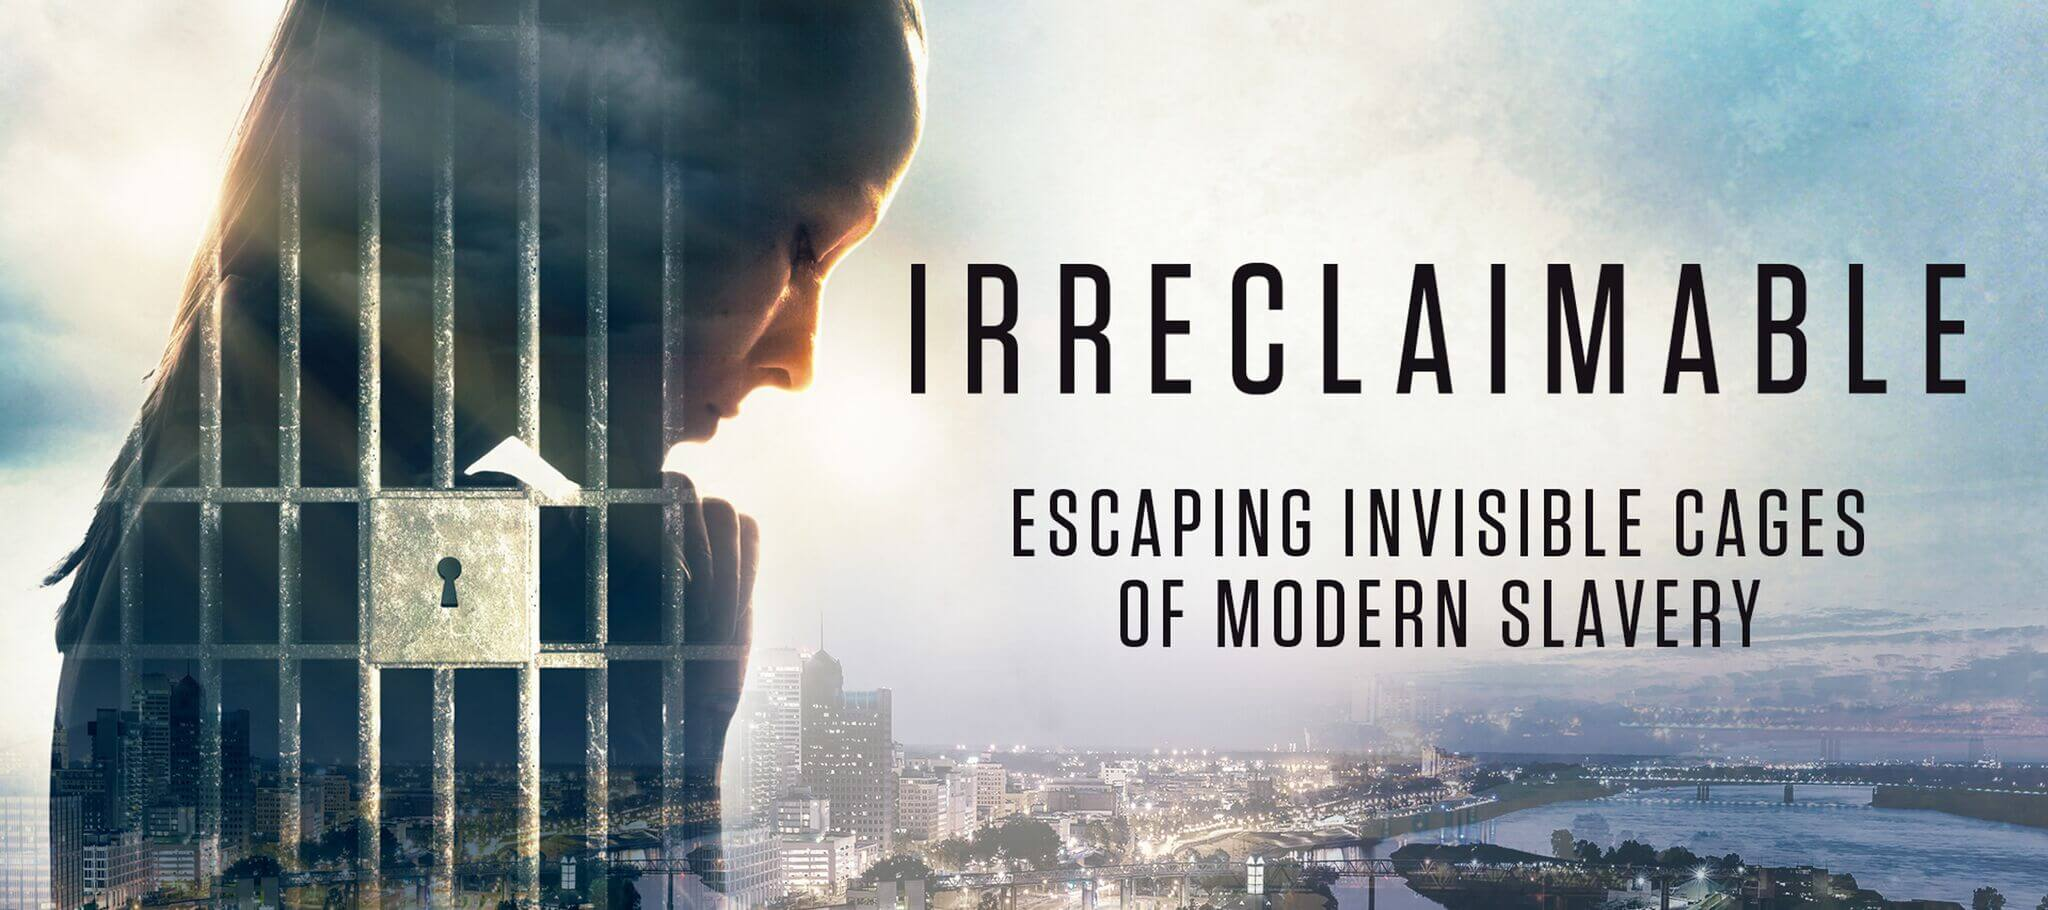 IRRECLAIMABLE